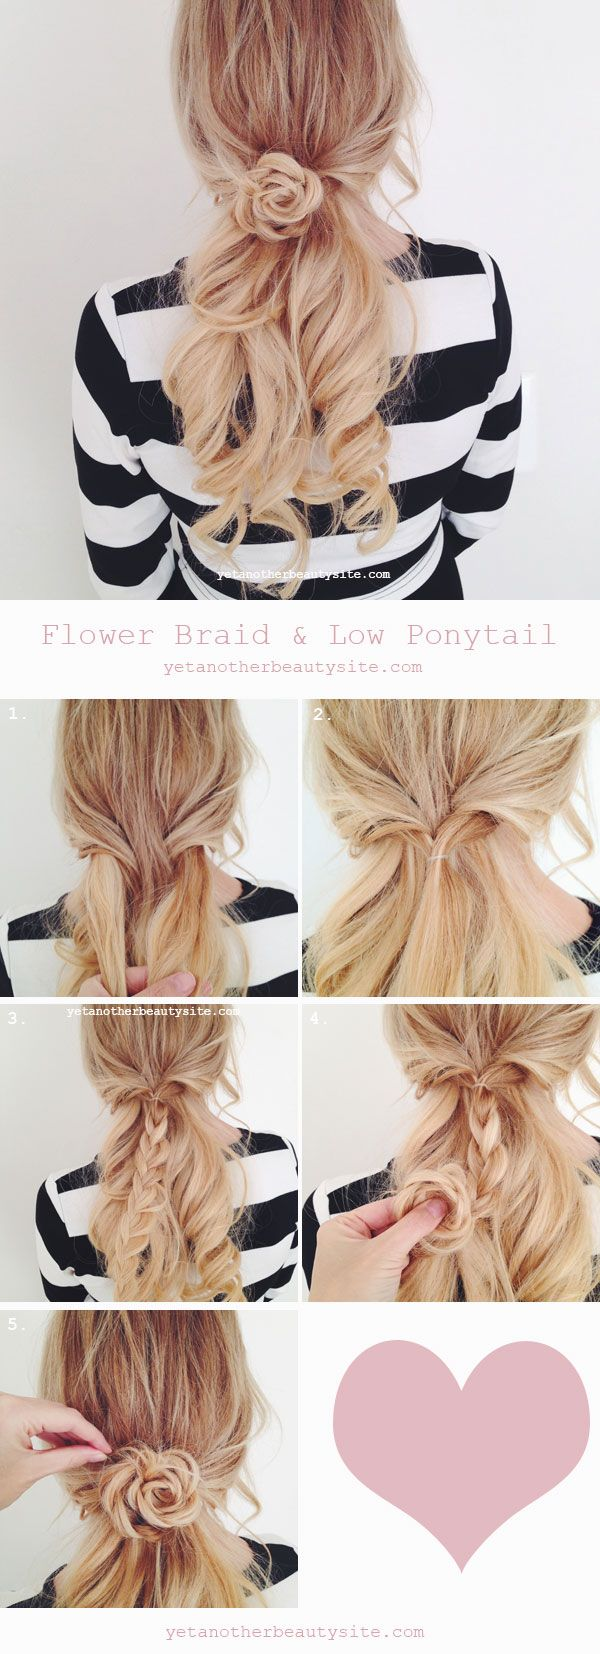 Fabulous 17 Creative Braid Hairstyles You Should Not Miss Pretty Designs Short Hairstyles Gunalazisus